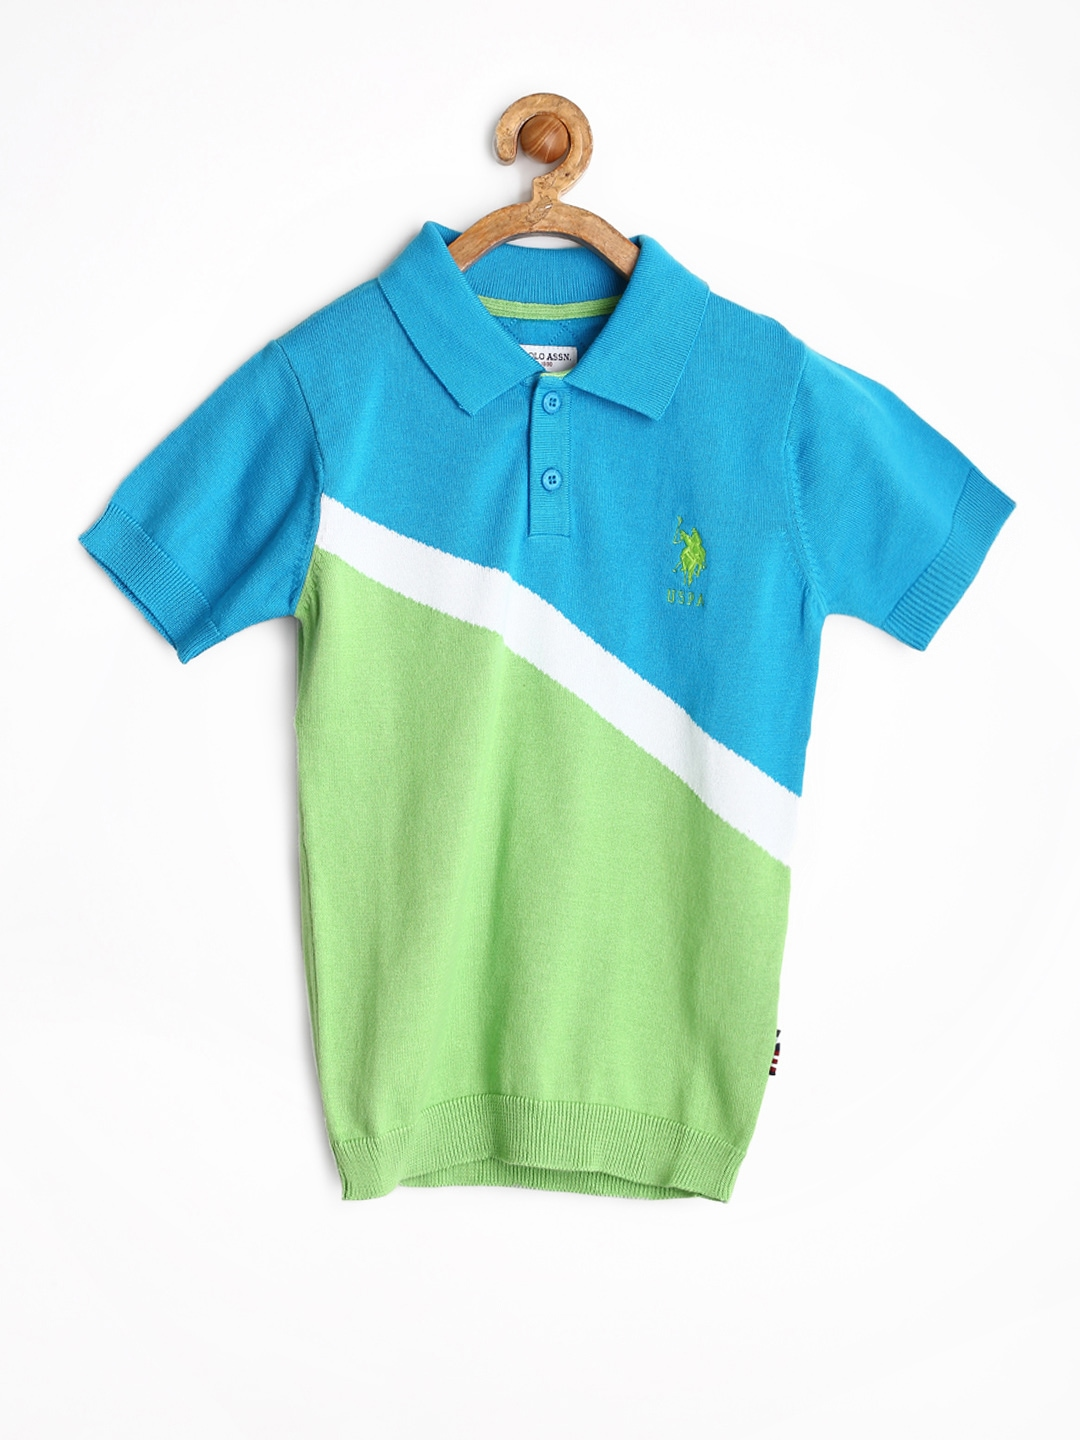 Related: kids polo ralph lauren kids polo shirts girls kids ralph lauren polo shirts girls polo shirts. Include description. Categories. Selected category All. Clothing, Shoes & Accessories Short Sleeve Polo Shirt Kids Uniform Solid Color Green Boys Girls Size 4 New. Brand New. $ Buy It Now. Estimated delivery Wed, Oct 3. Free.